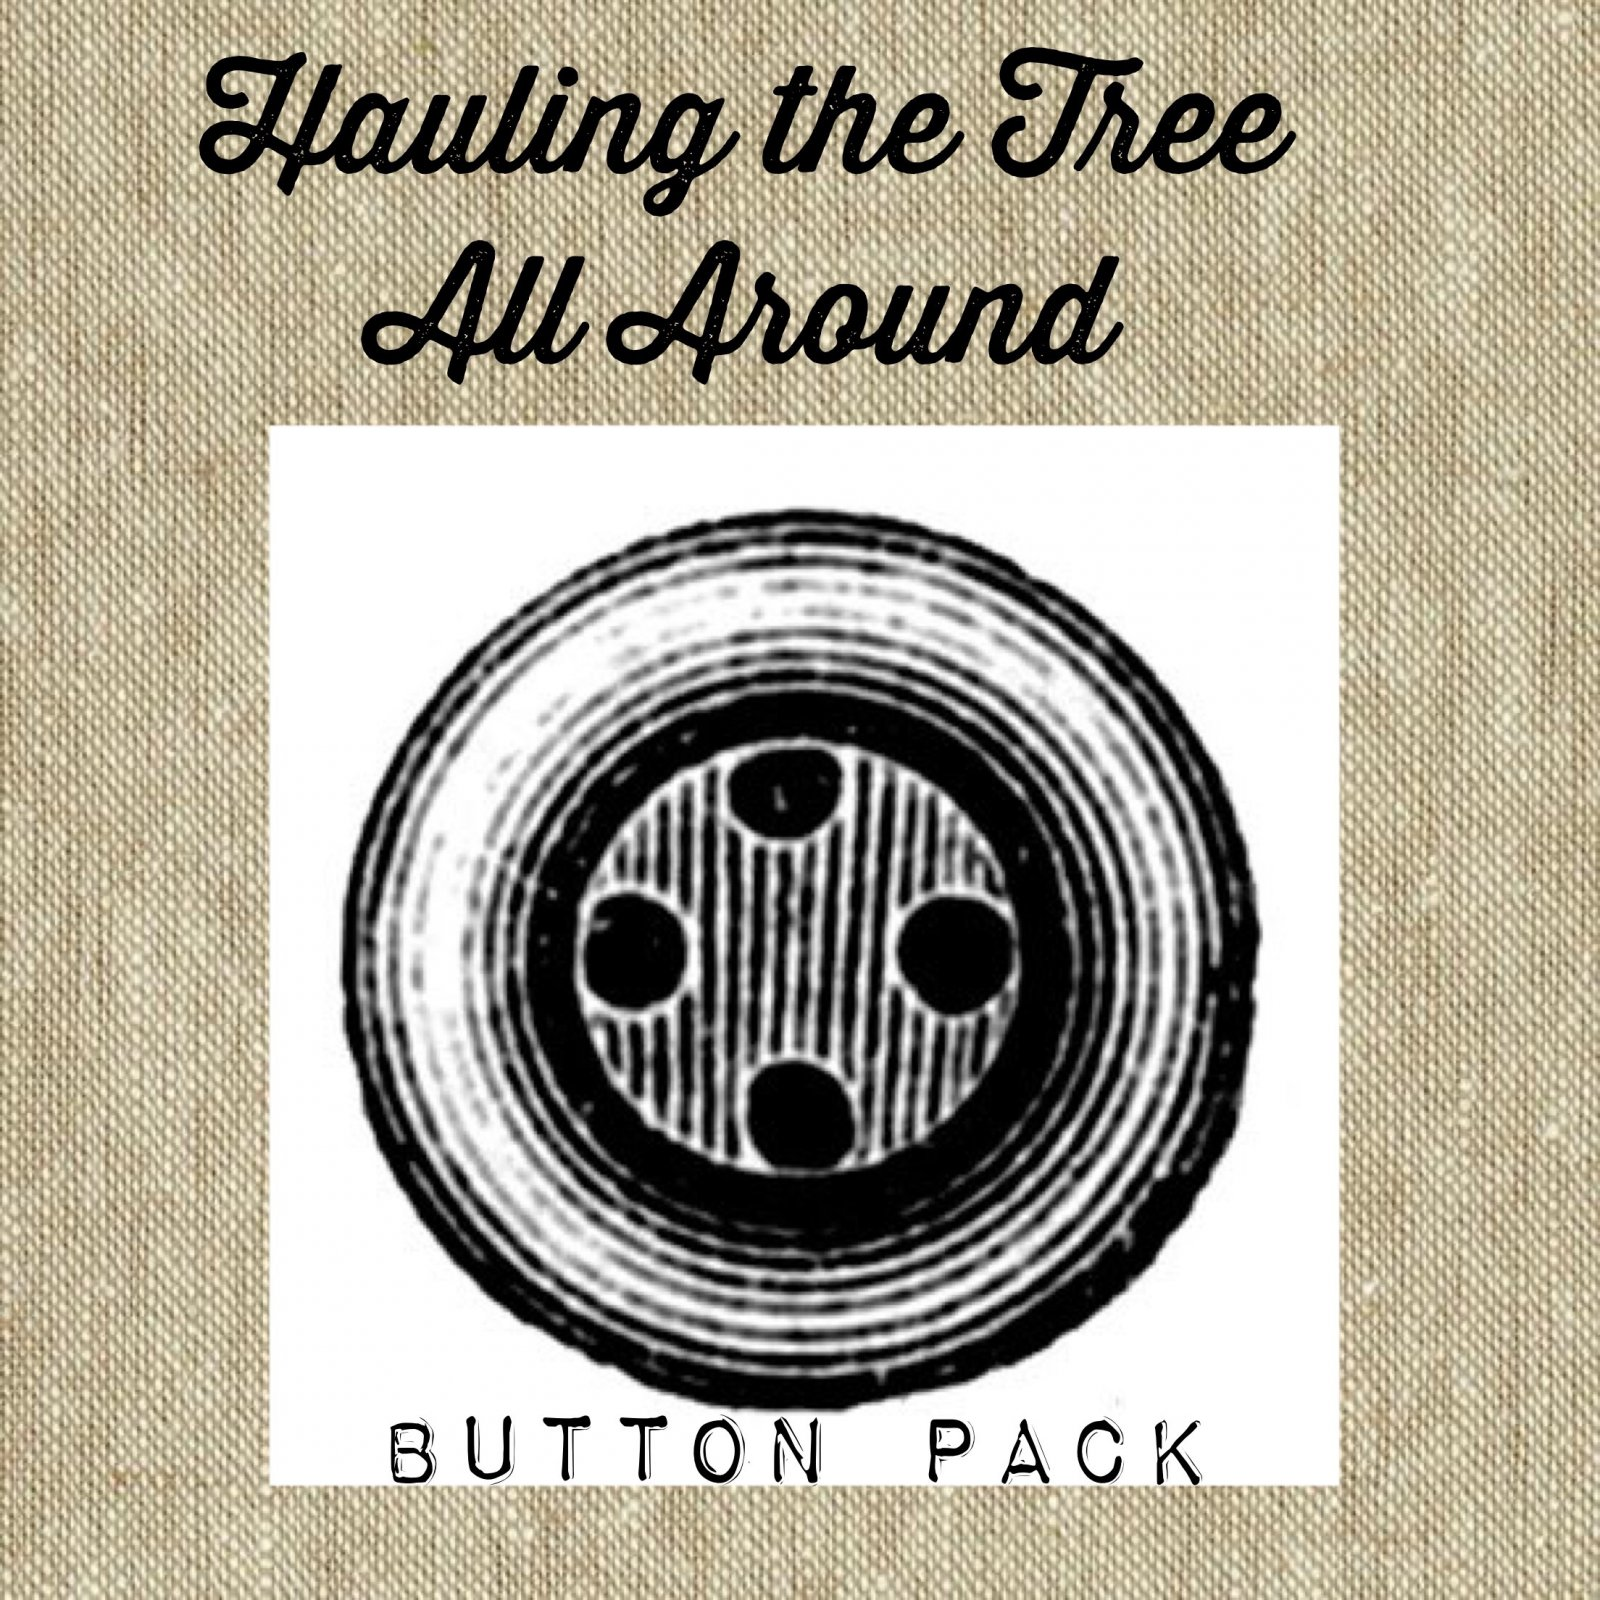 Hauling the Tree All Around Button Pack